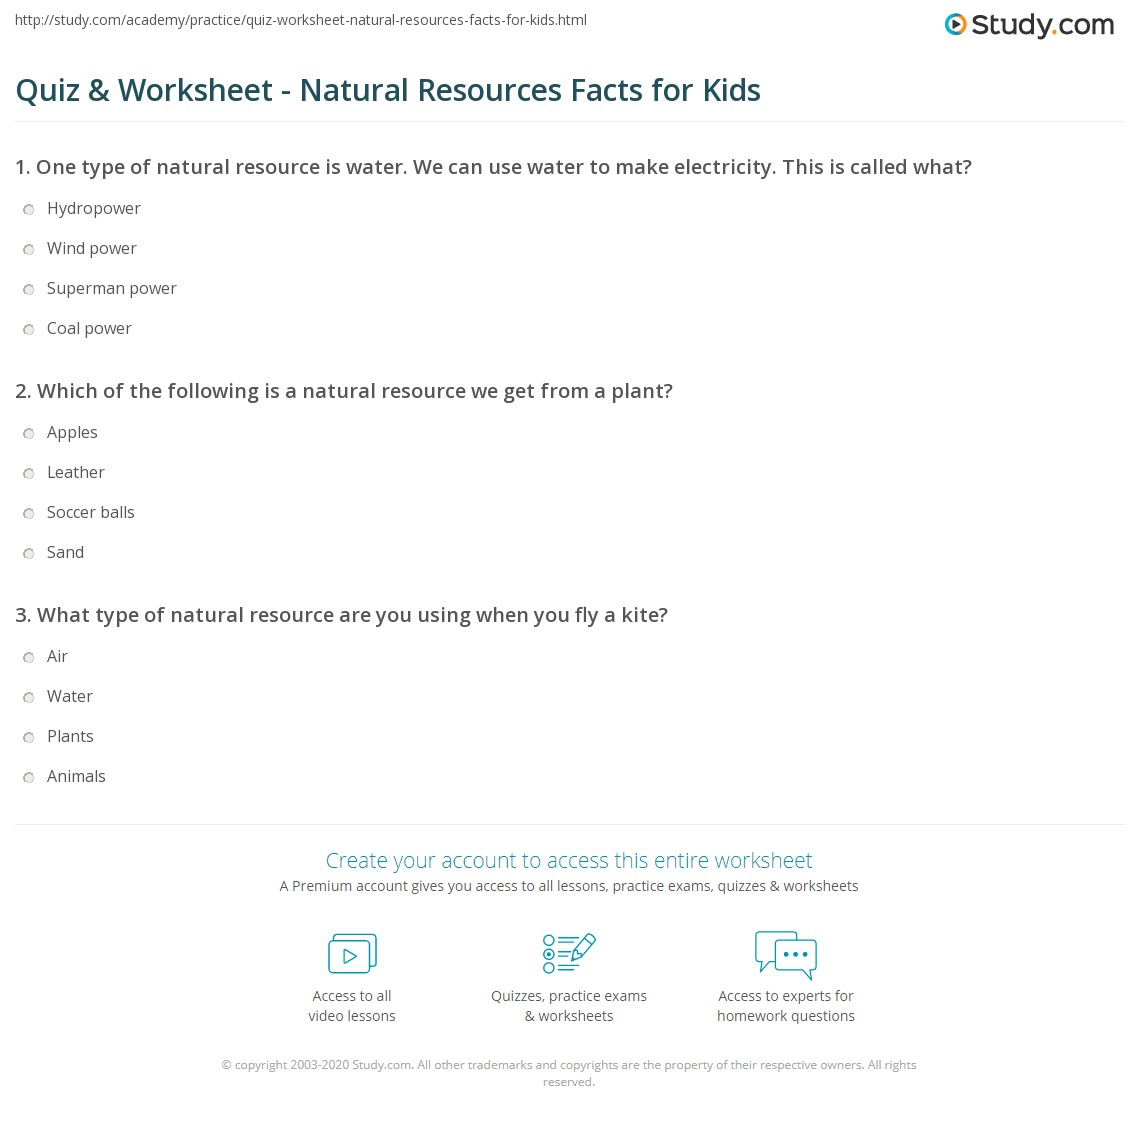 Printables Natural Resources For Kids Worksheets quiz worksheet natural resources facts for kids study com print lesson definition examples worksheet